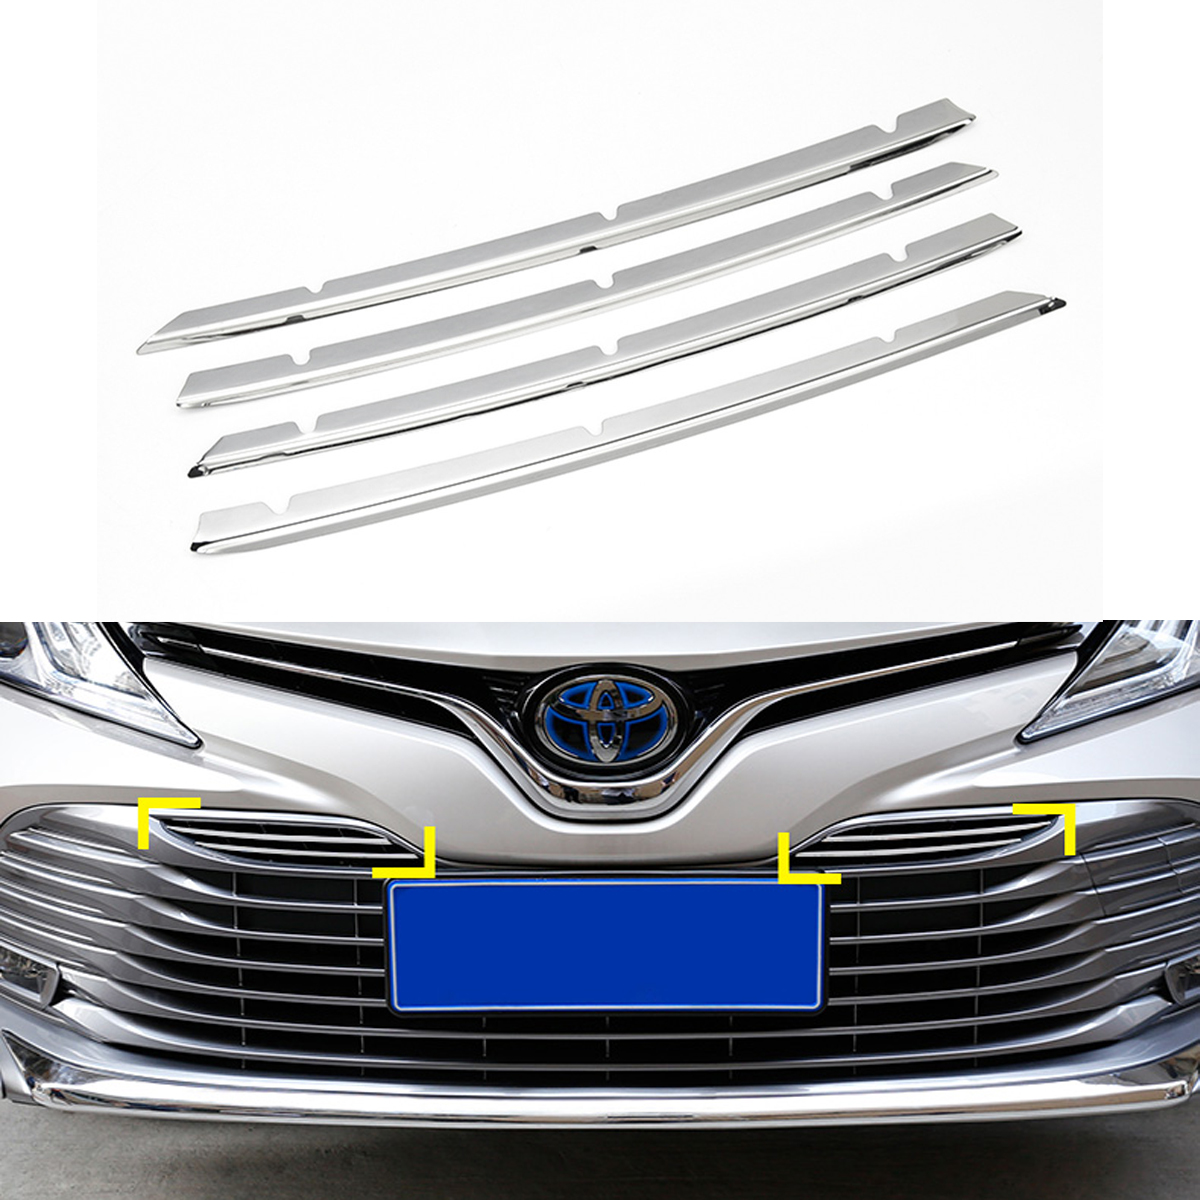 For Toyota Camry 2018 Front Mesh Grille Stainless Steel Trim Strip Sticker Front Grille Molding Car Styling Accessories 4pcs/set grille